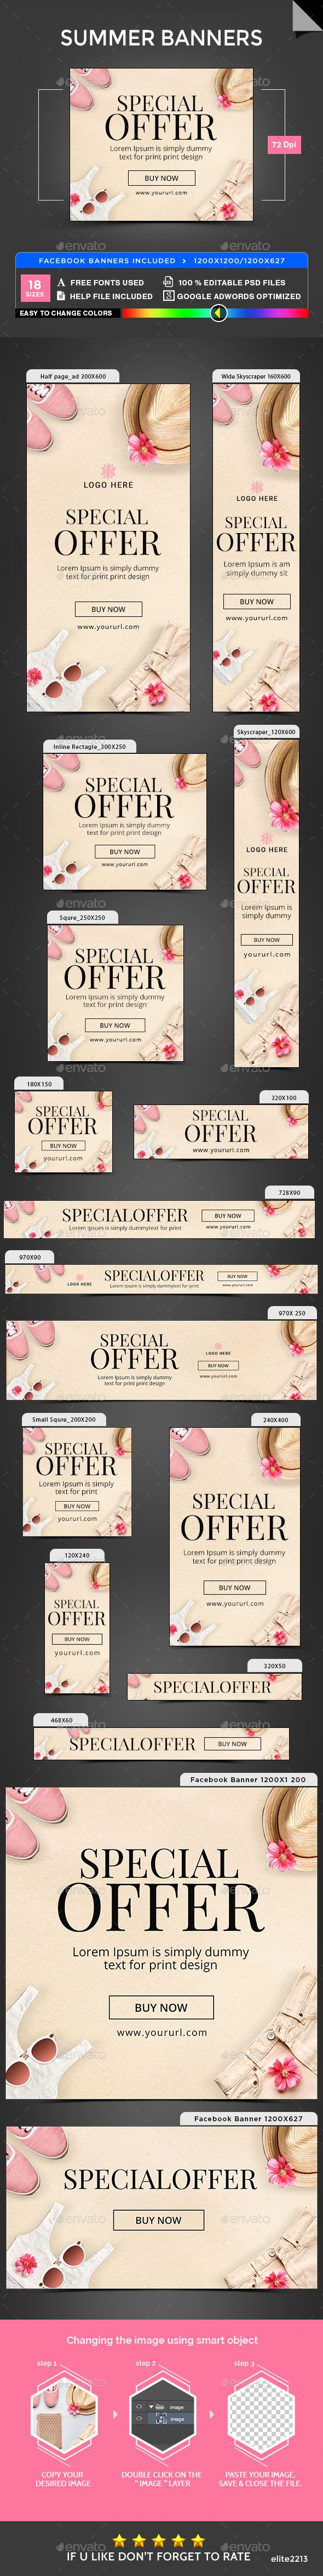 Summer Banners — Photoshop PSD #social media #marketing • Available here → https://graphicriver.net/item/summer-banners/19822999?ref=pxcr